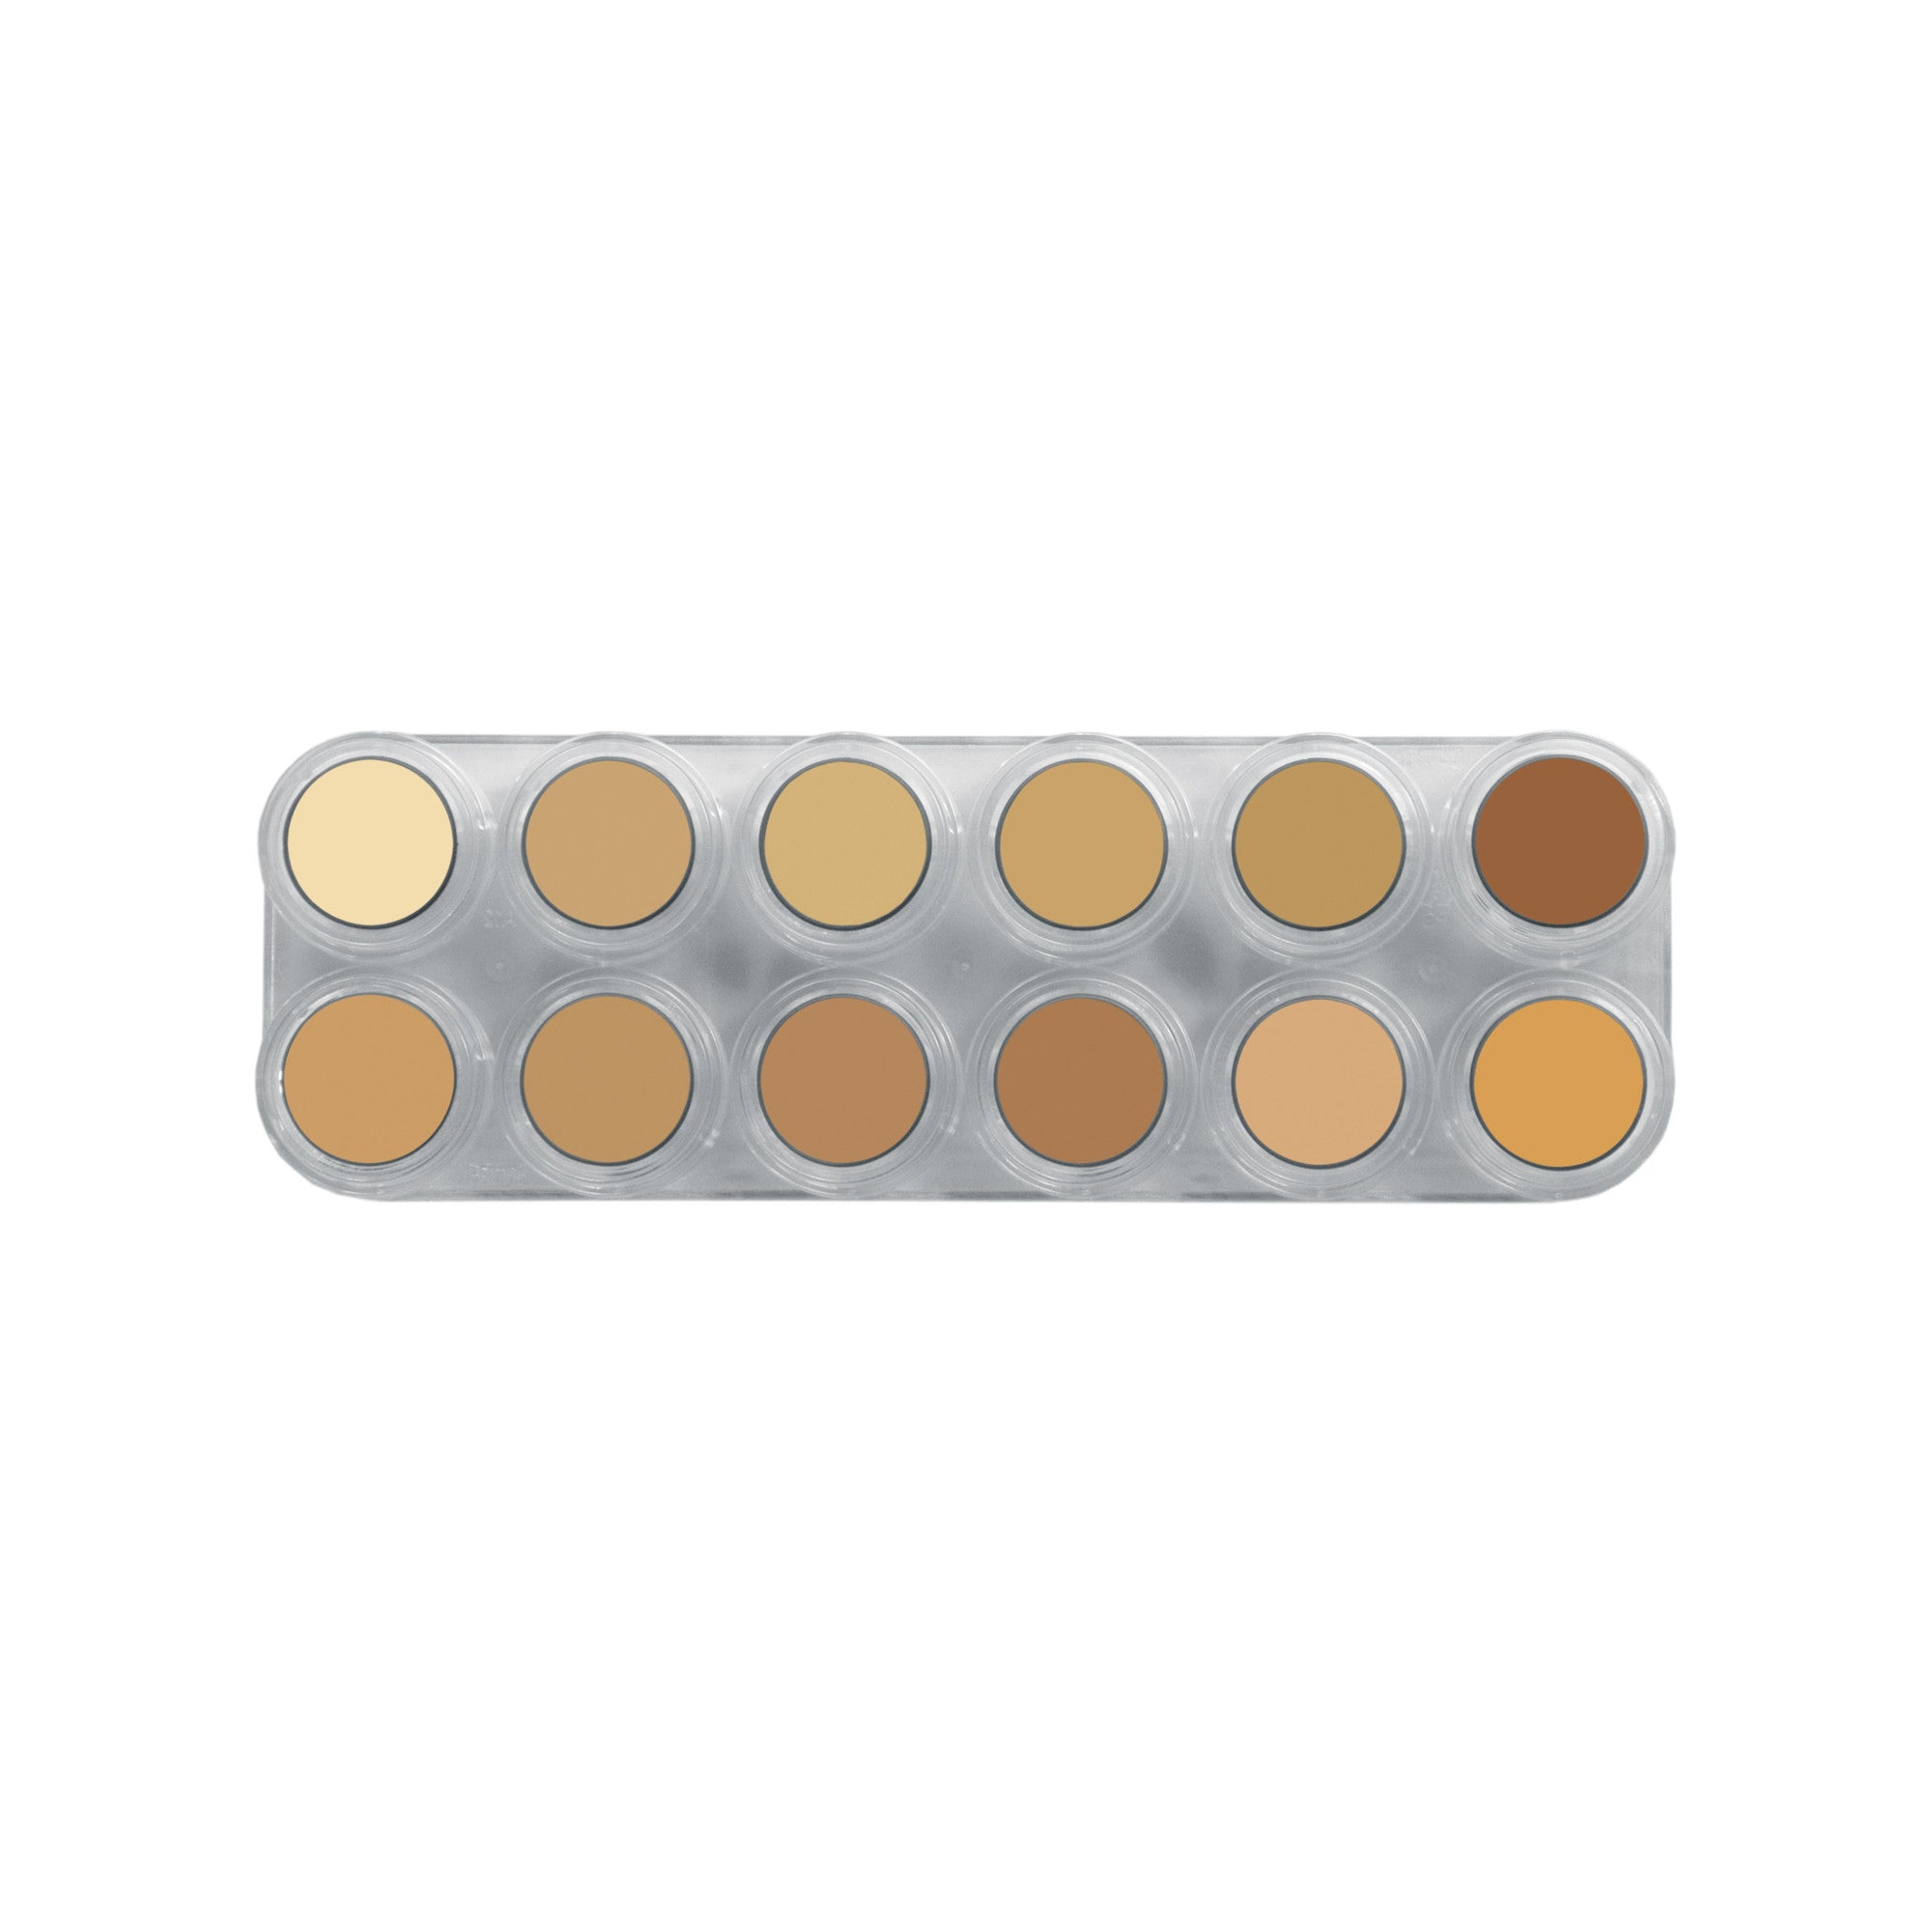 Grimas Pure Crème 12 Colour Face Paint  Palette - V - Red Carpet FX - Professional Makeup